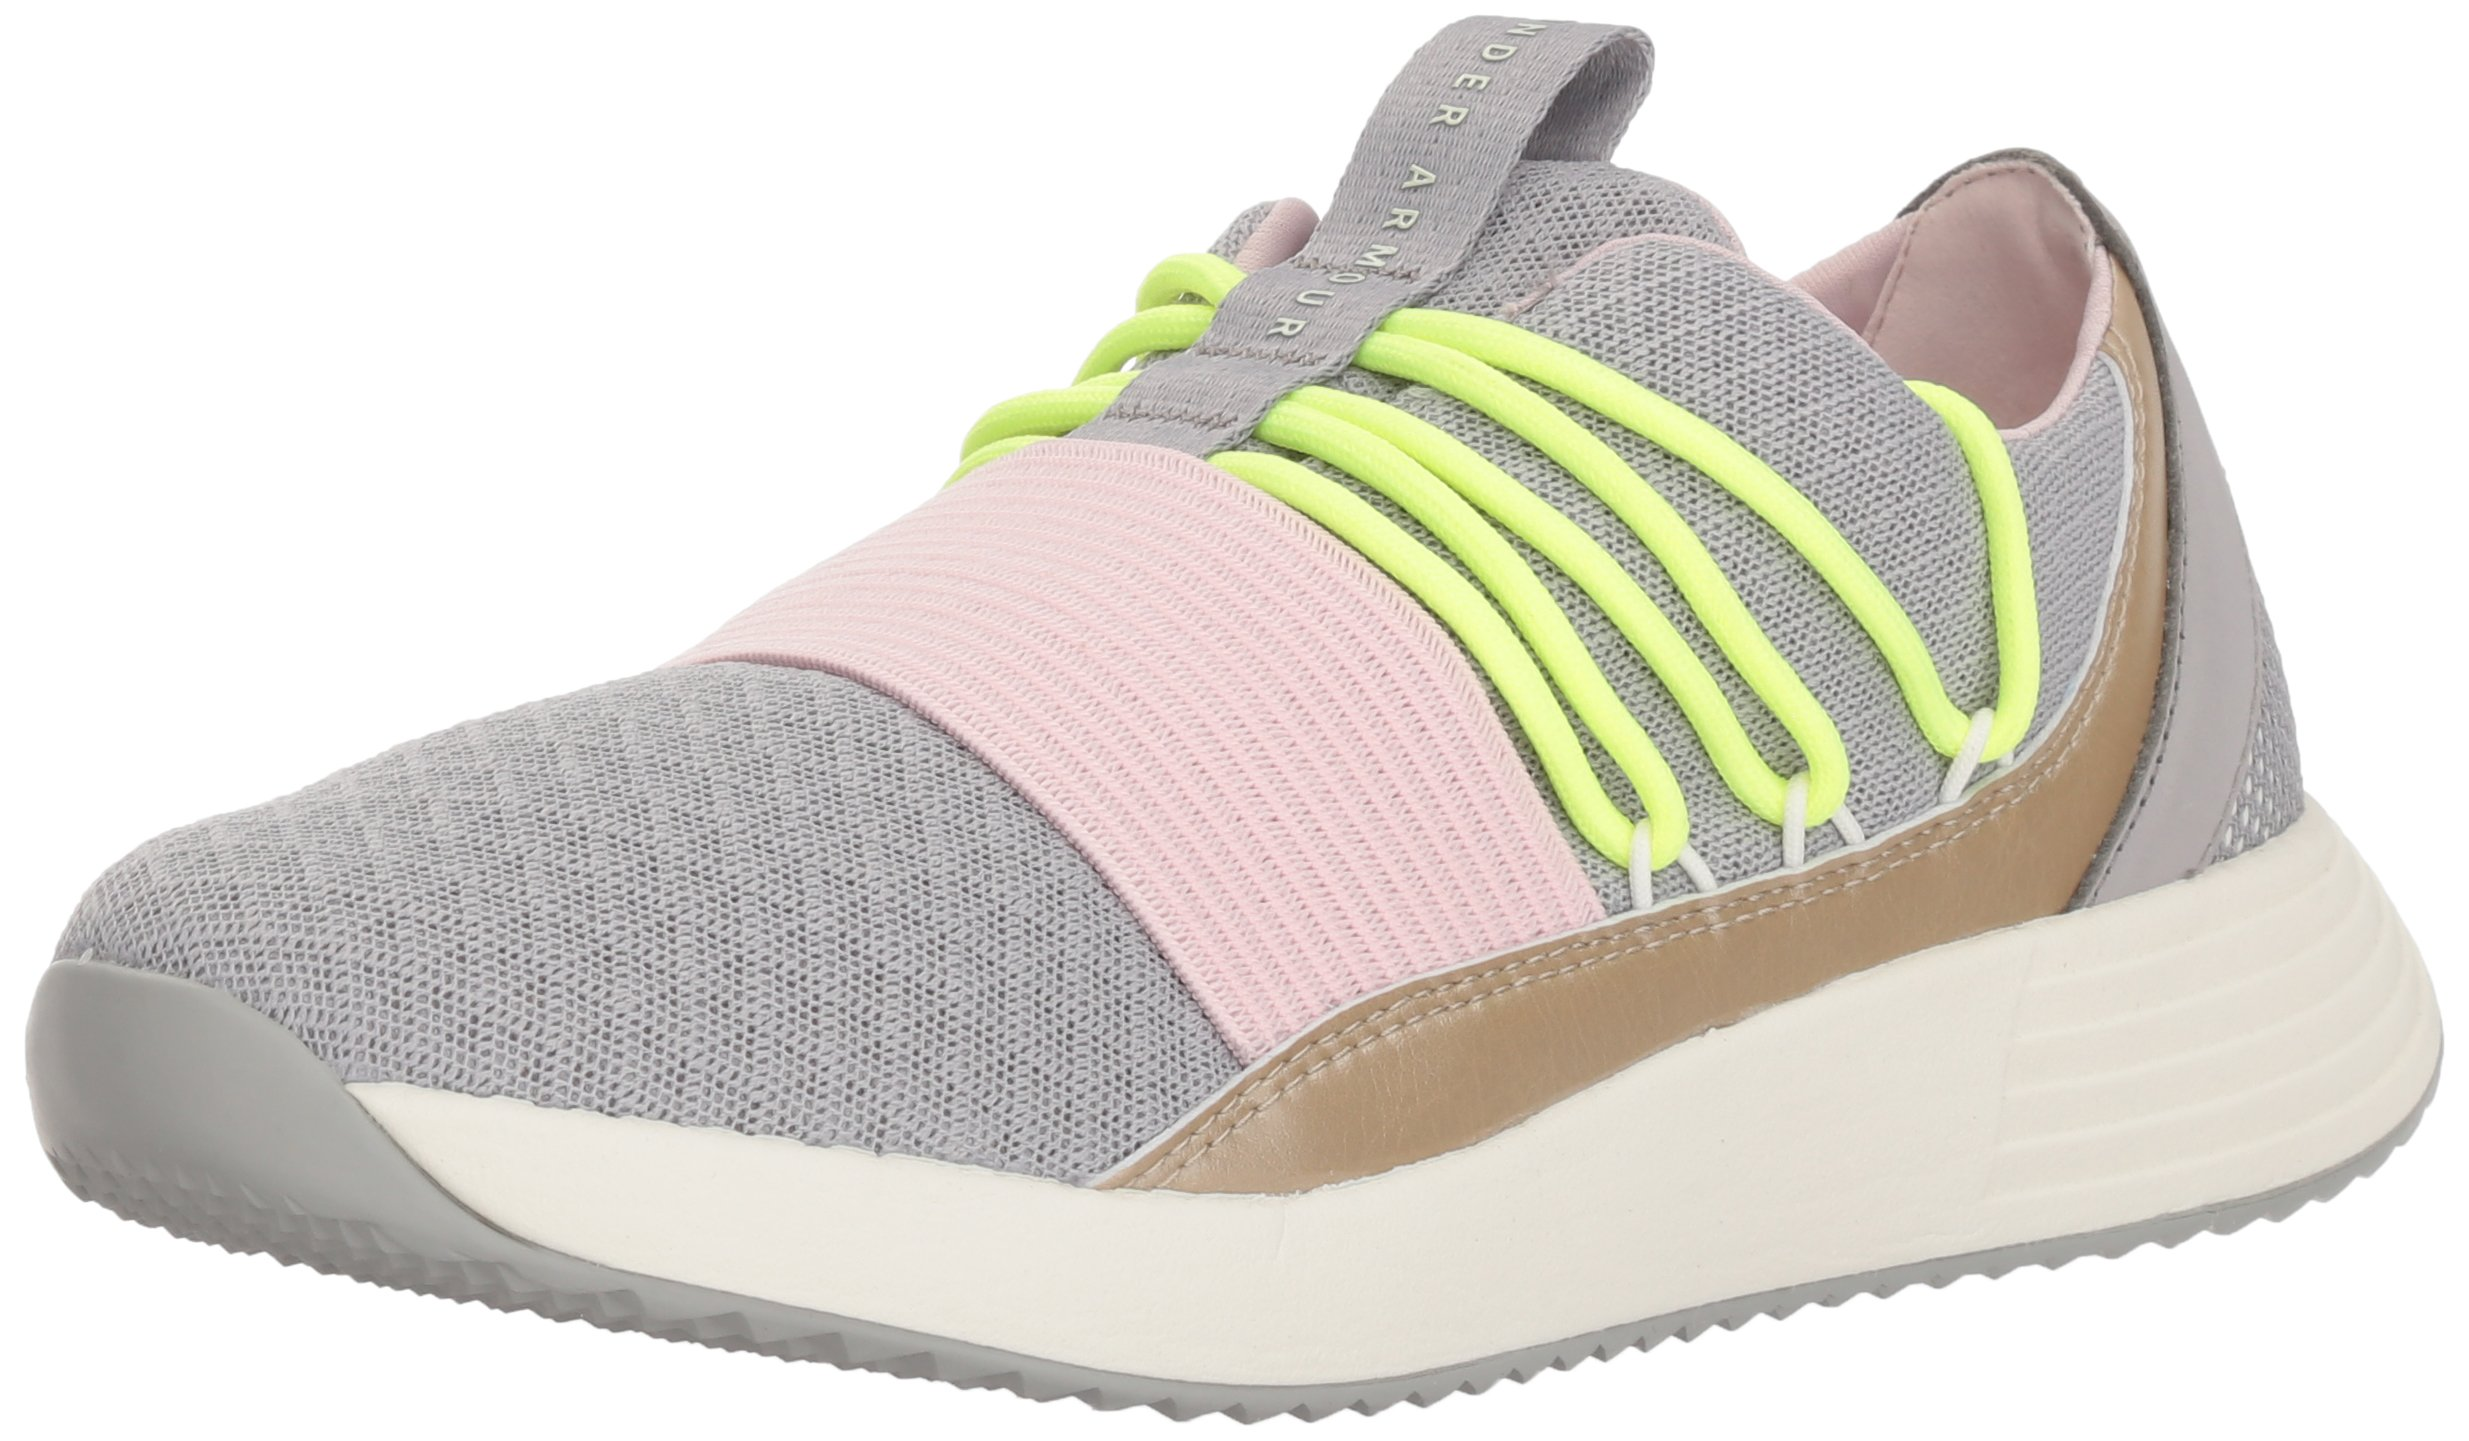 Under Armour Women's Breathe Lace Sneaker, Tin (102)/Ivory, 10